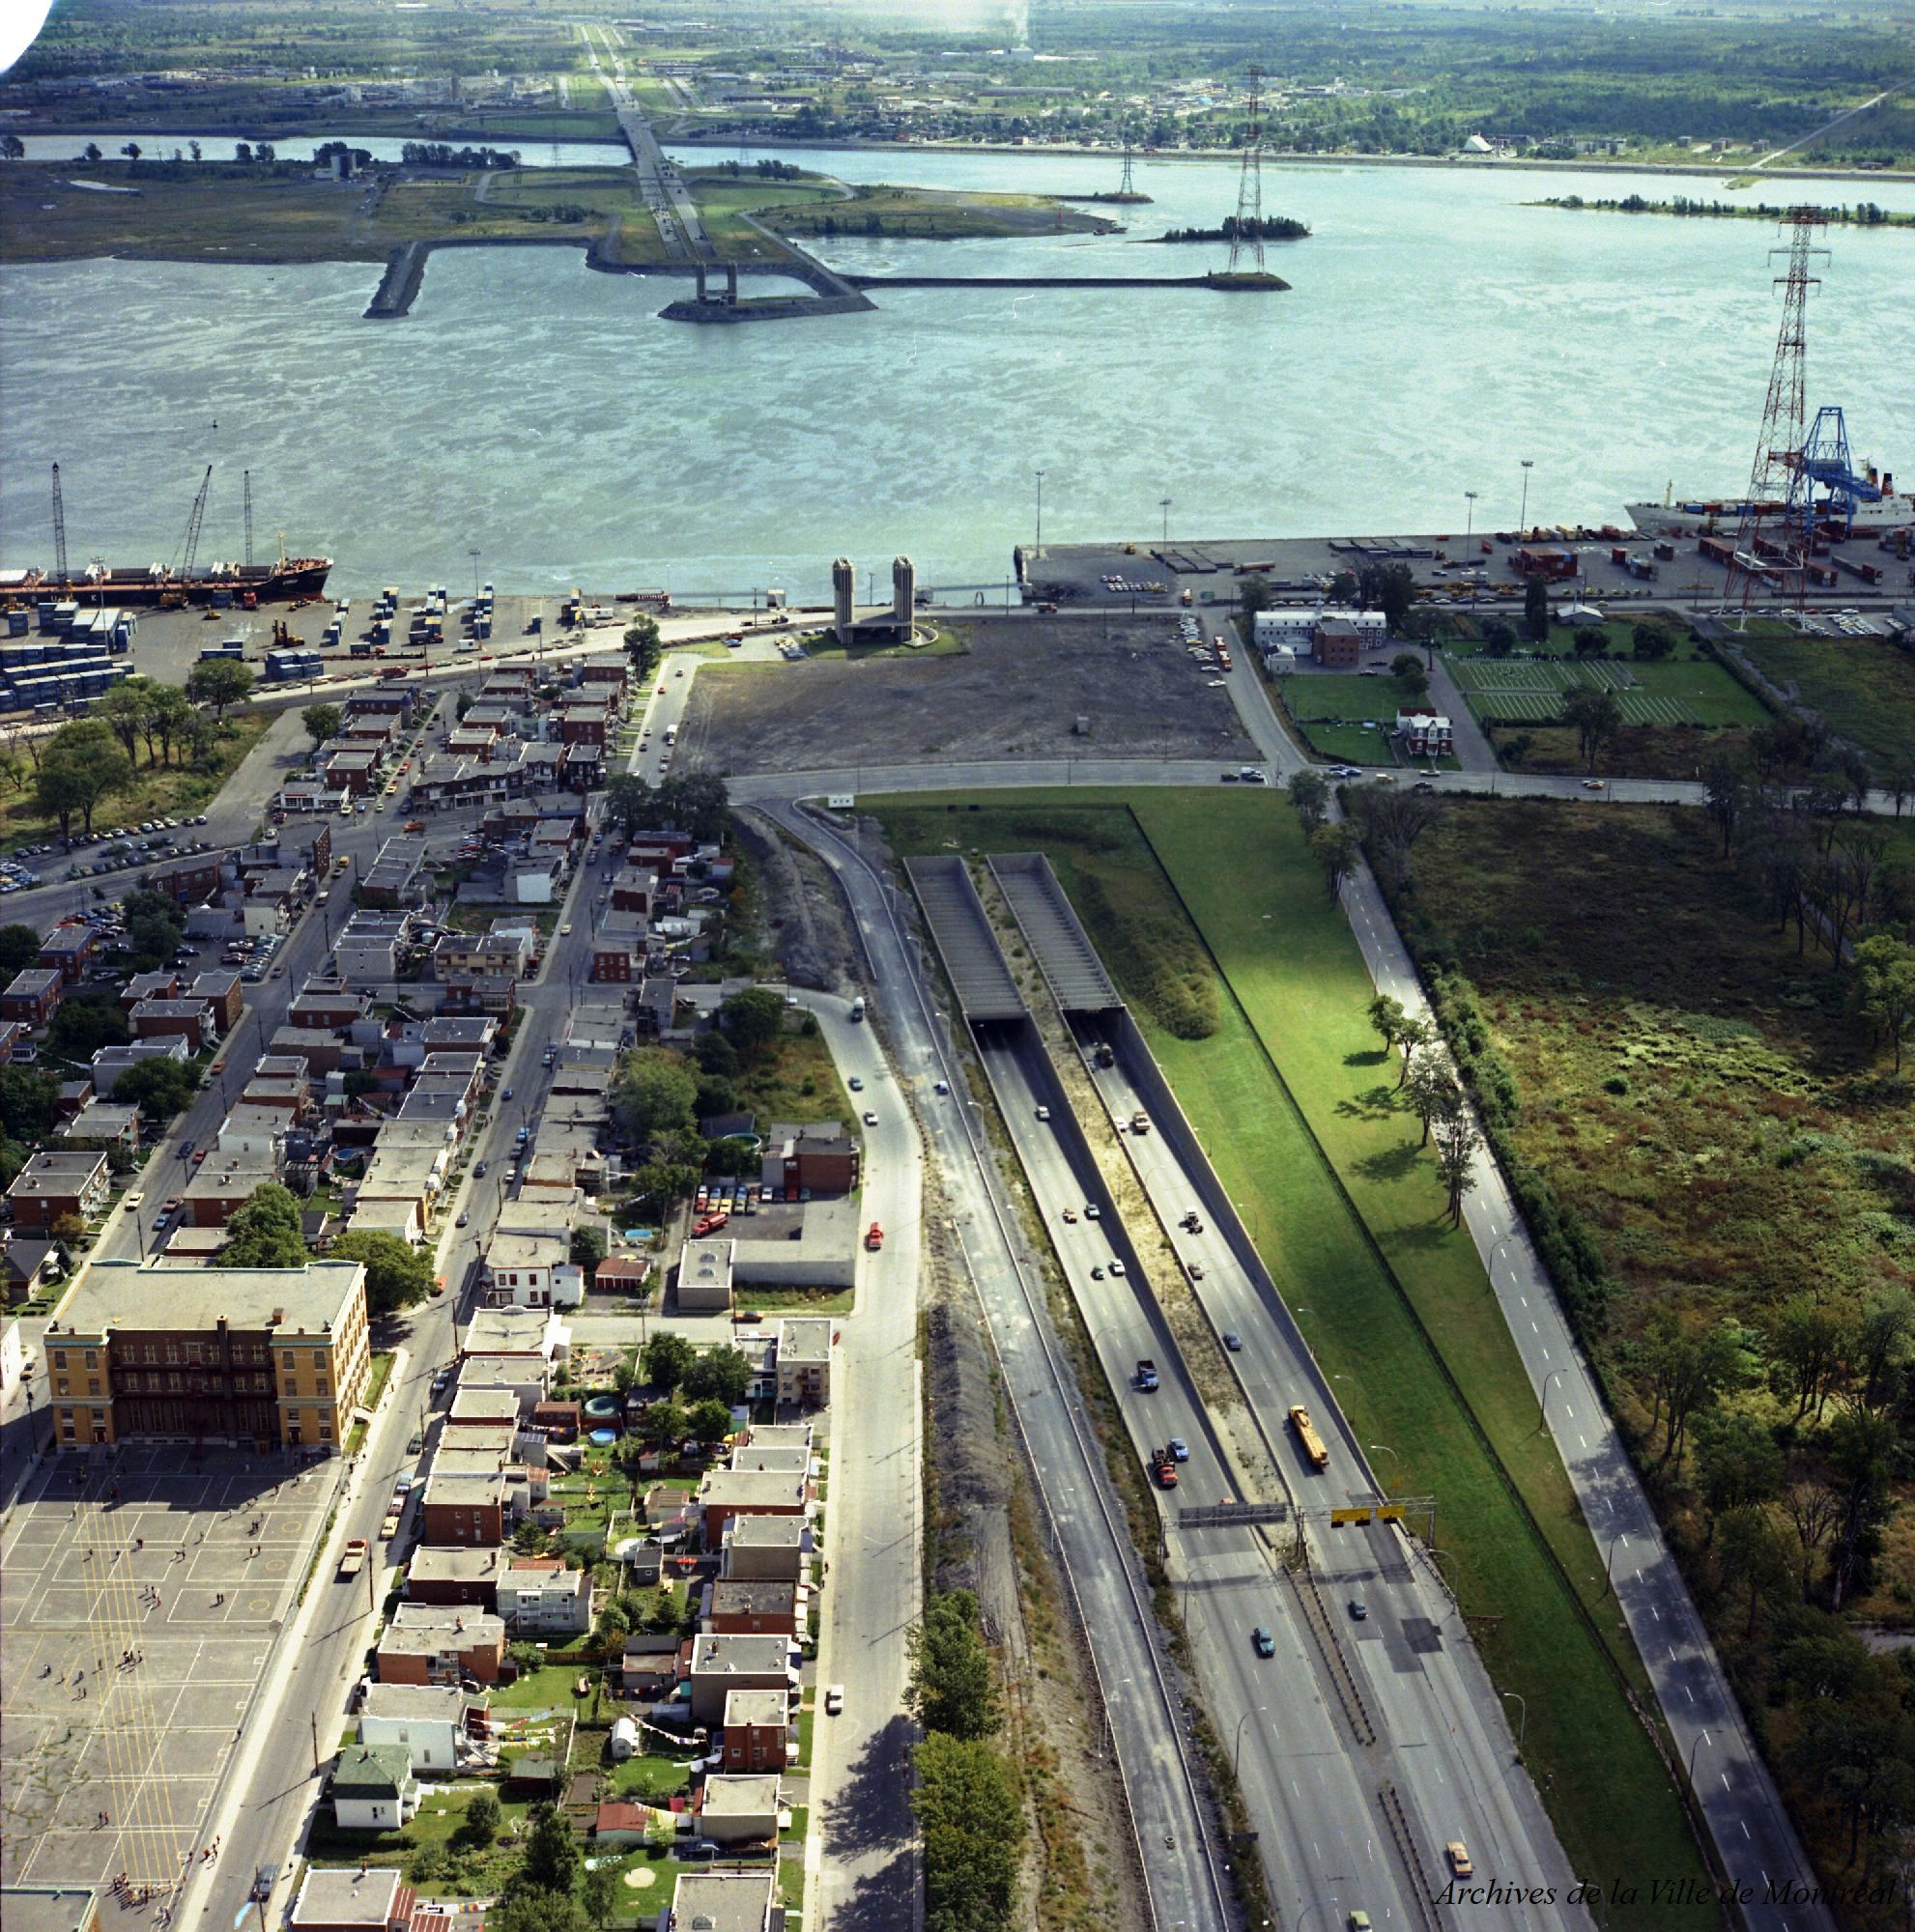 Cars on a highway with a port and a river in the background